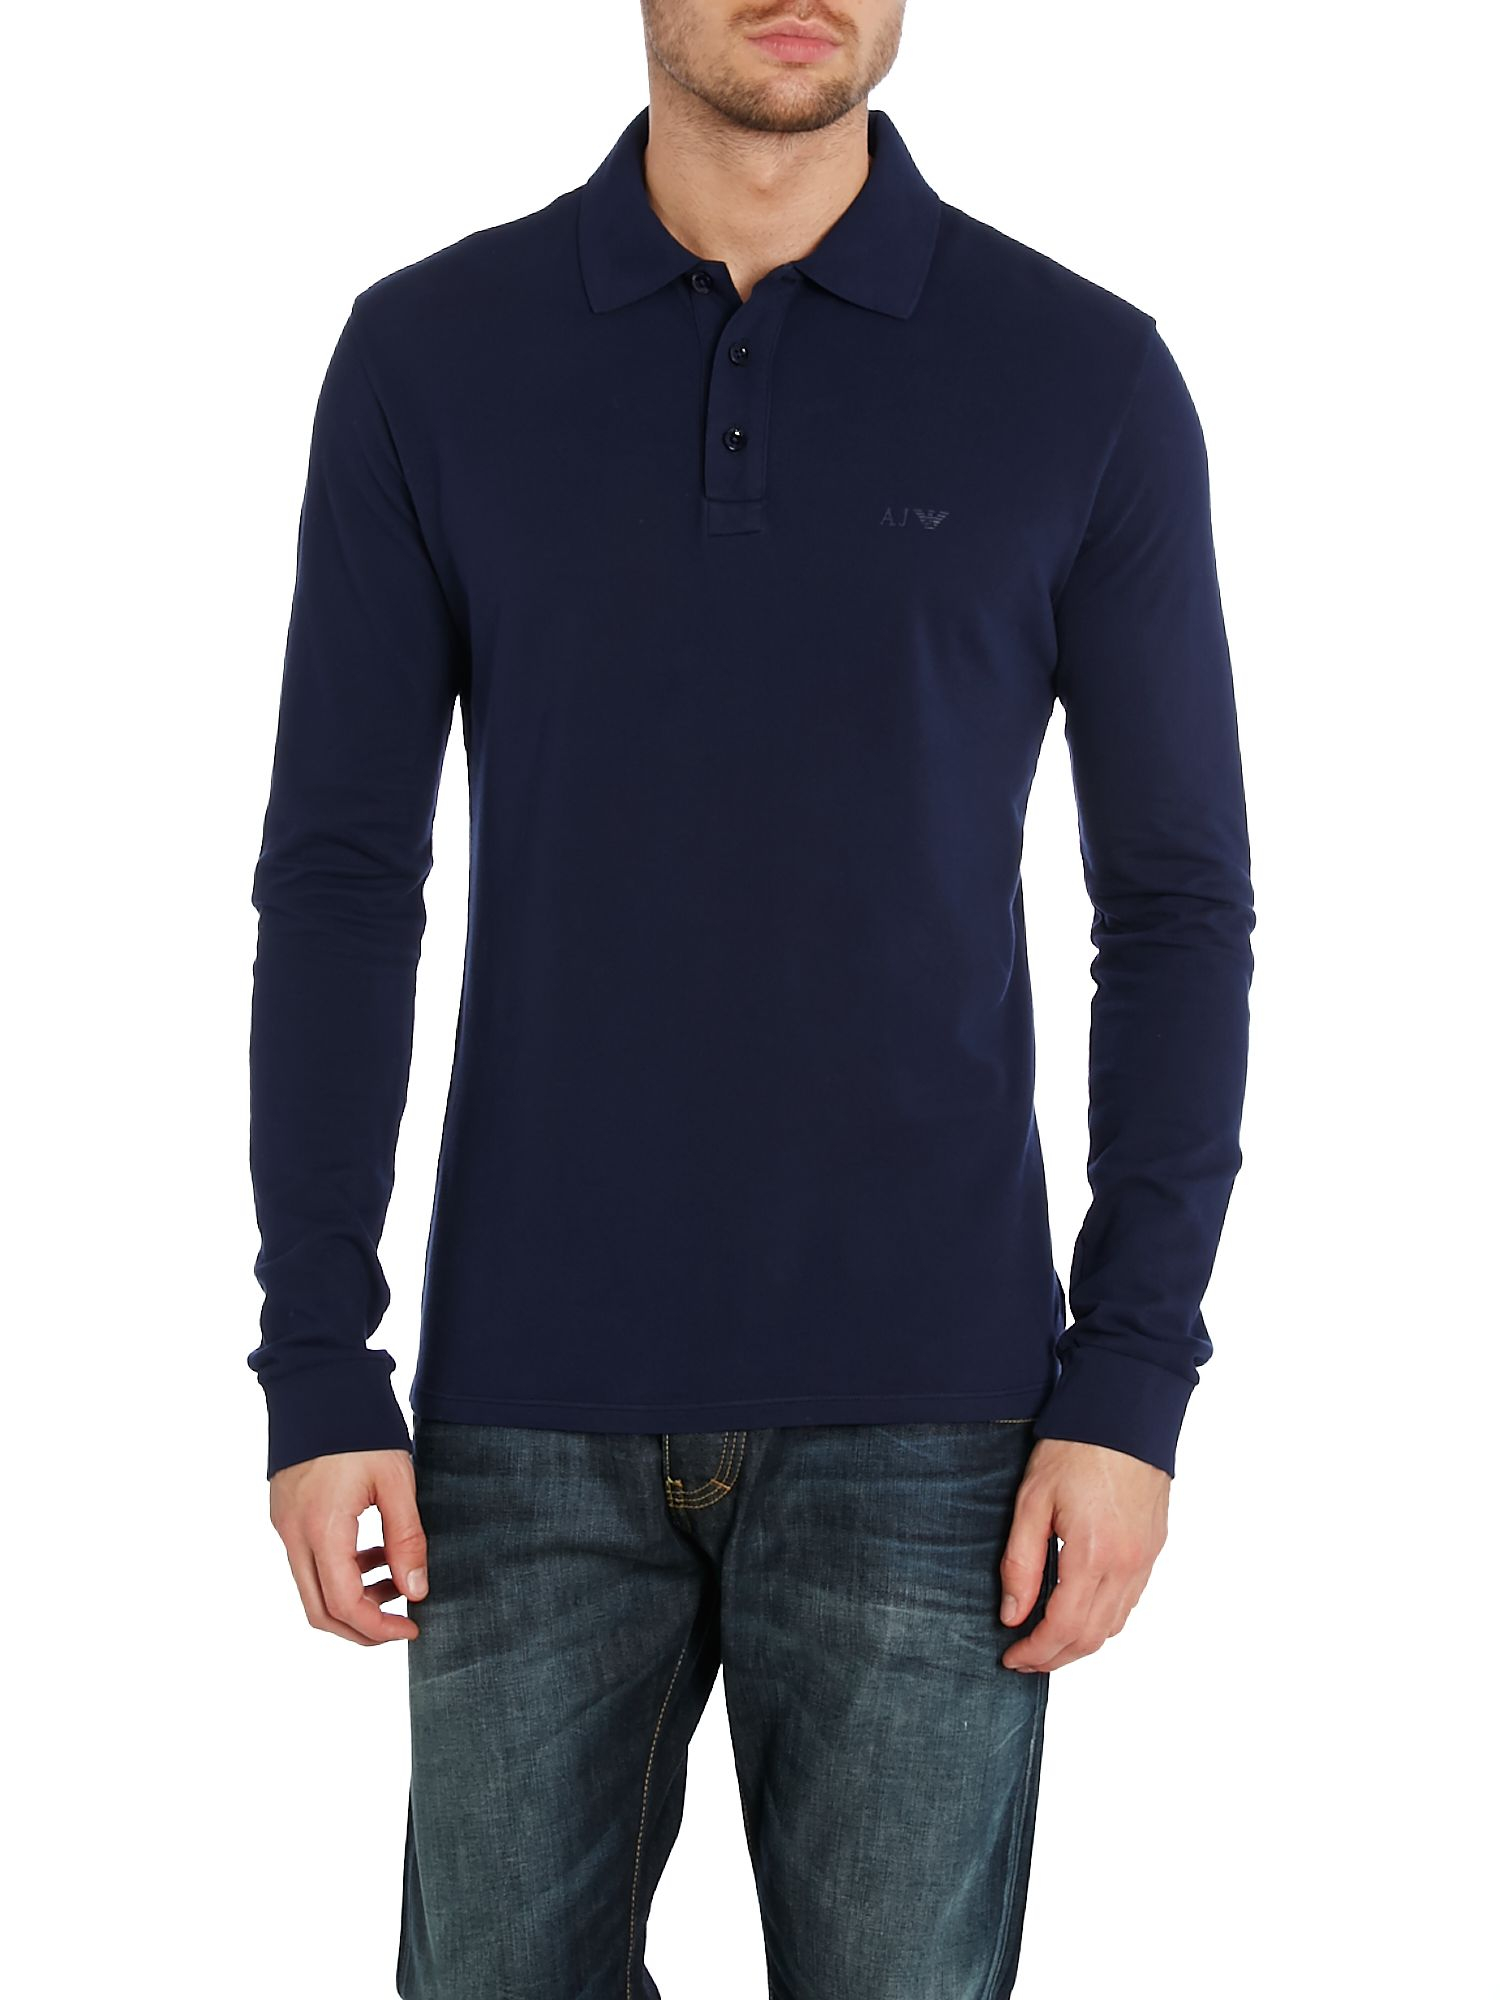 ad7c33dfb621 Armani Jeans Mercerised Long Sleeve Polo Shirt